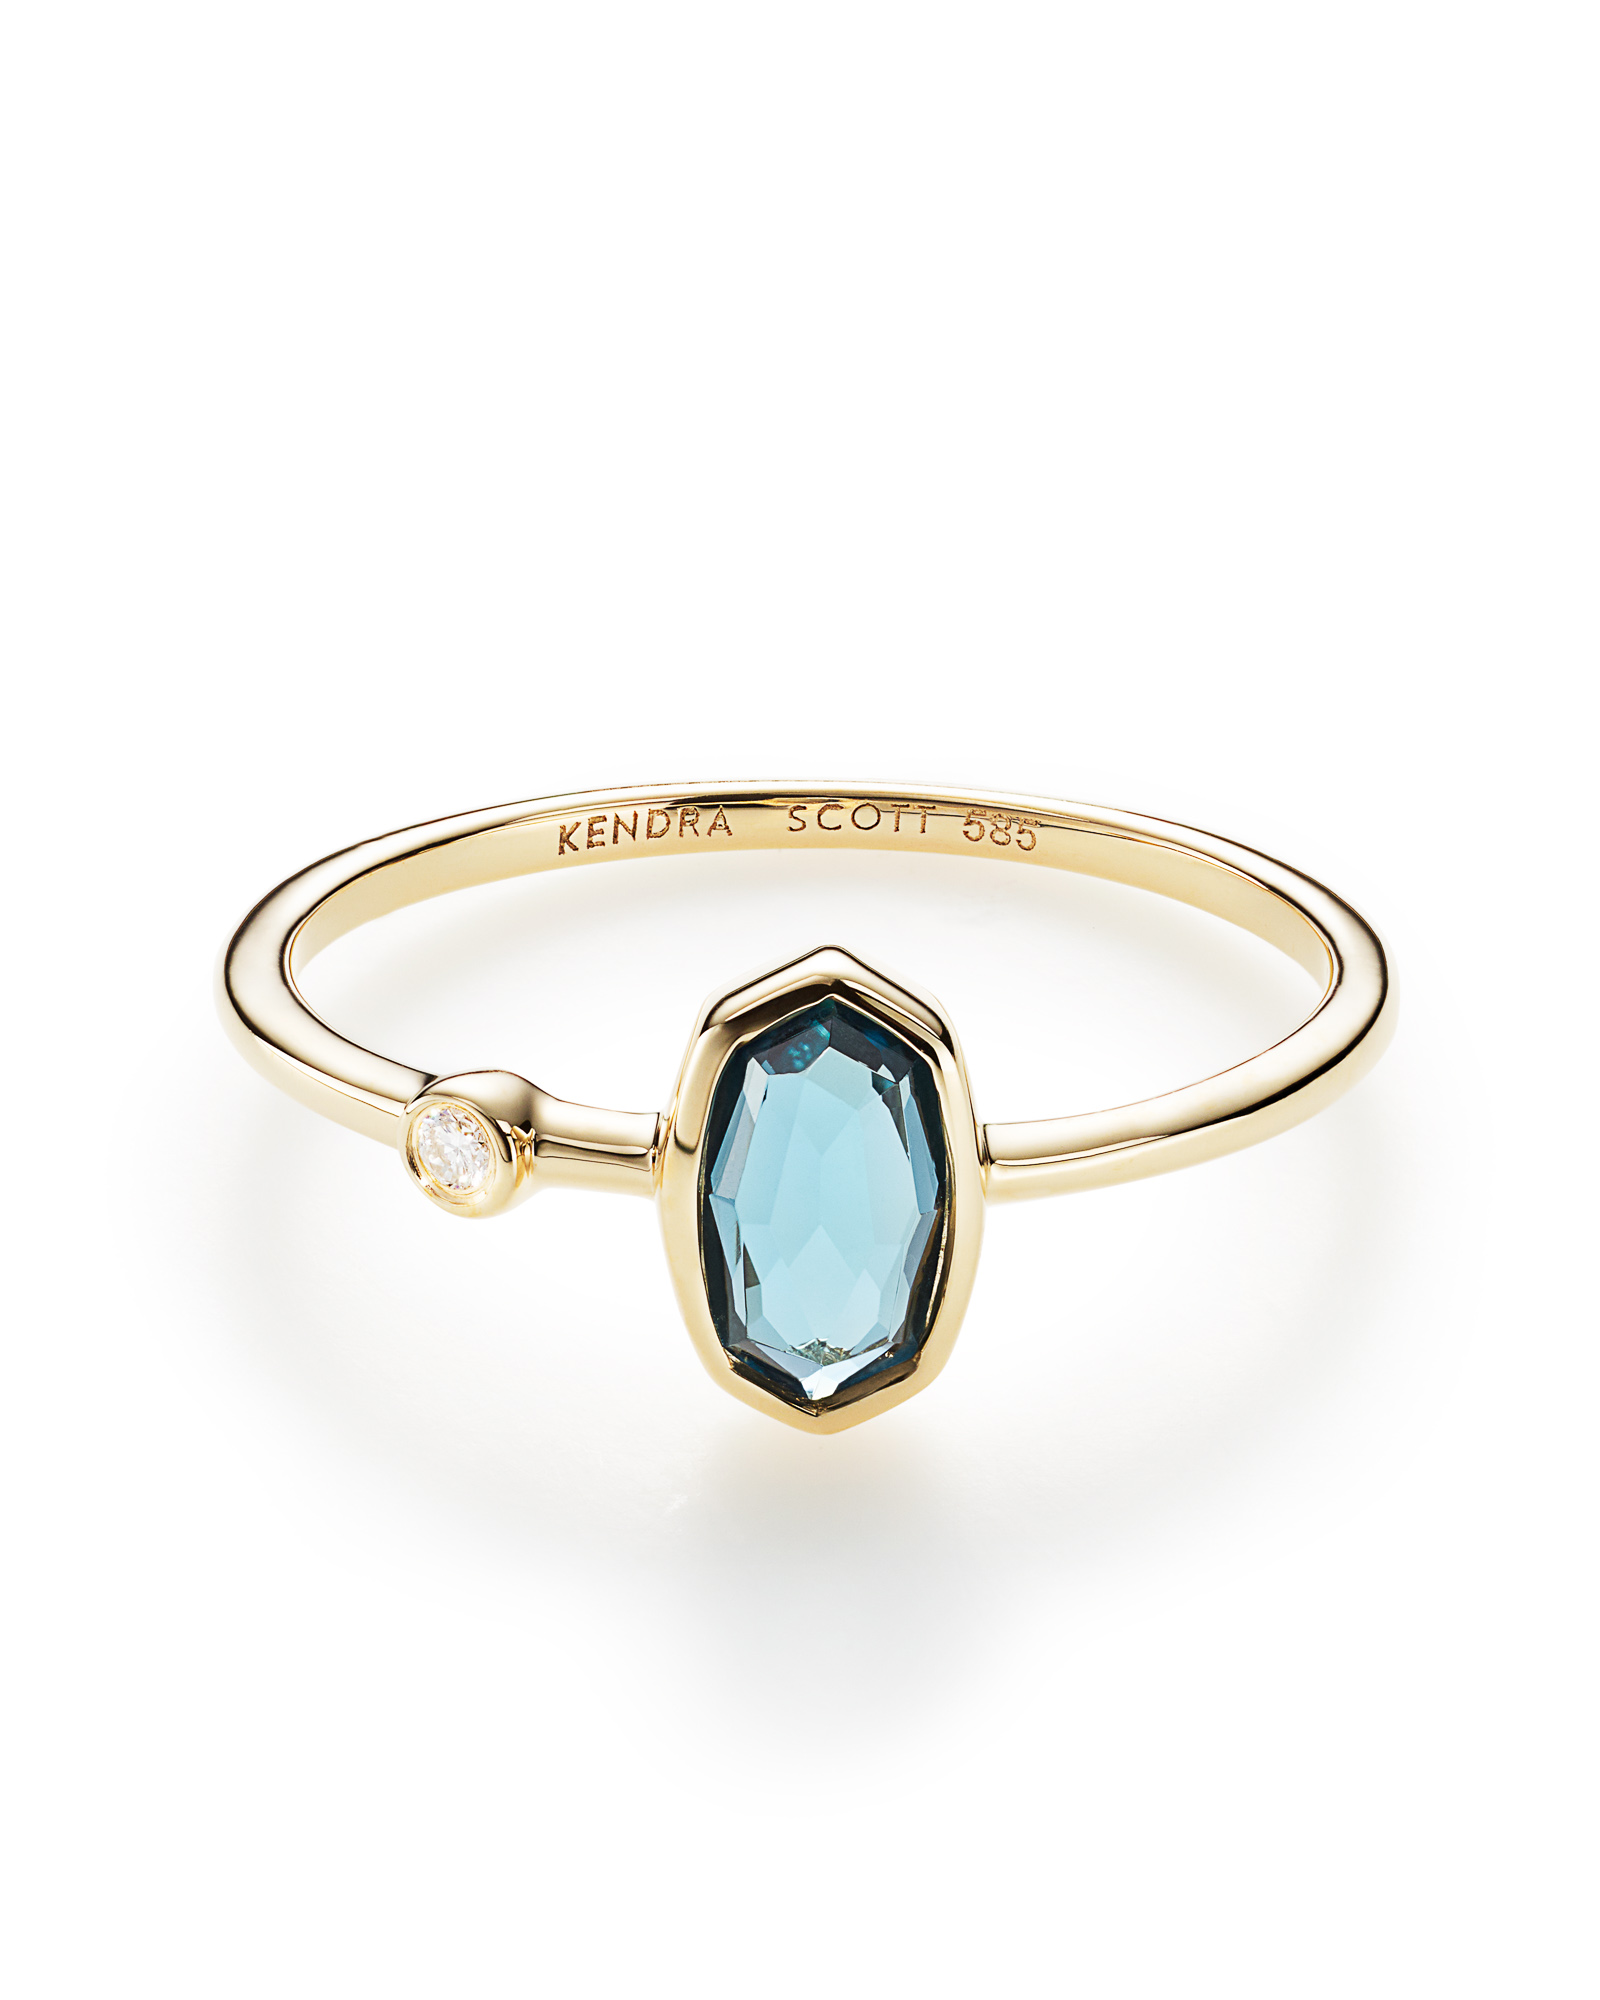 Chastain Ring in London Blue Topaz and 14k Yellow Gold